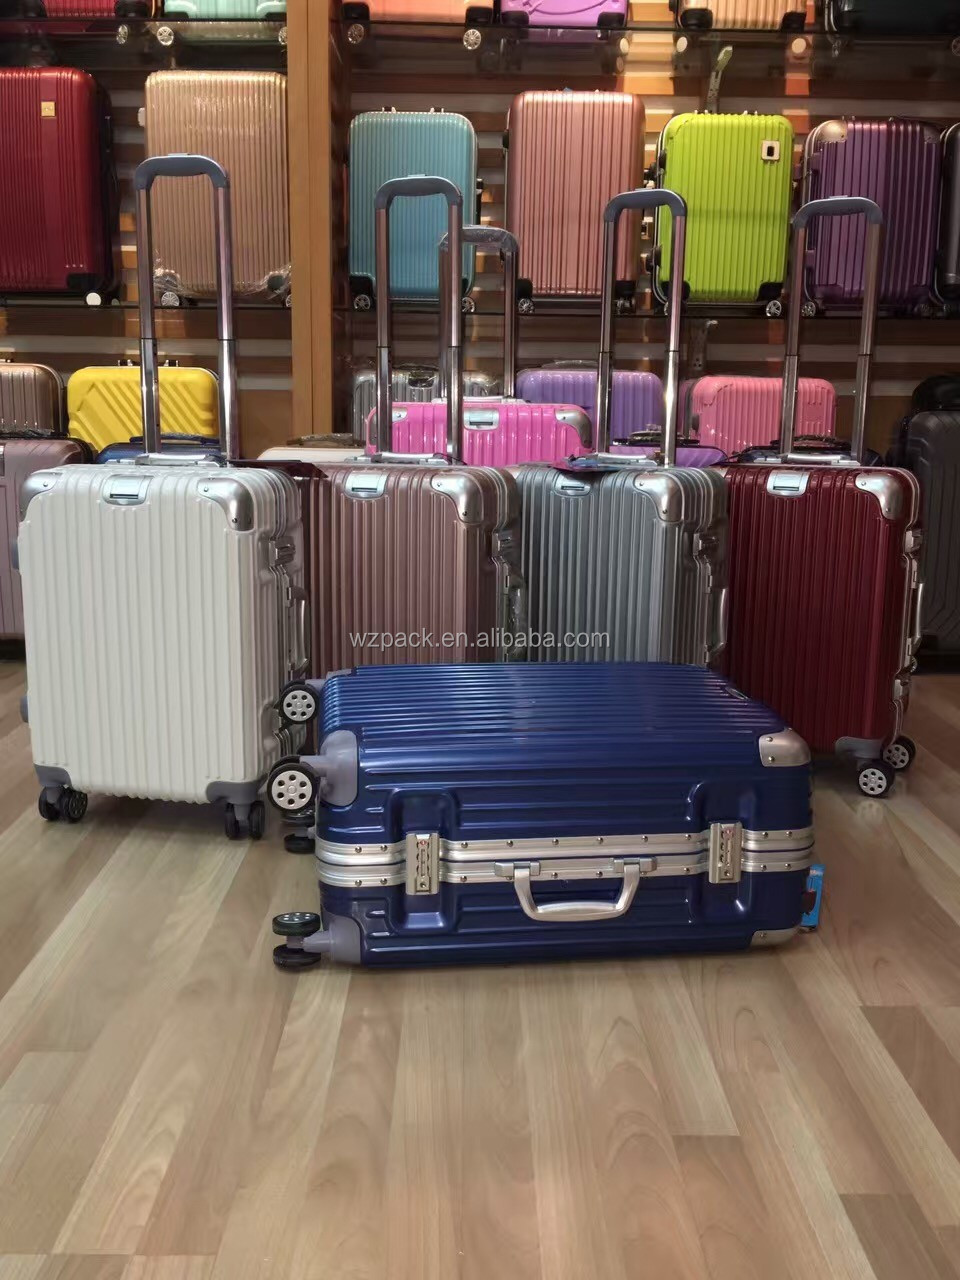 High Quality Business Trolley Luggage Travel Aluminum Frame Tralley Case With Wheels